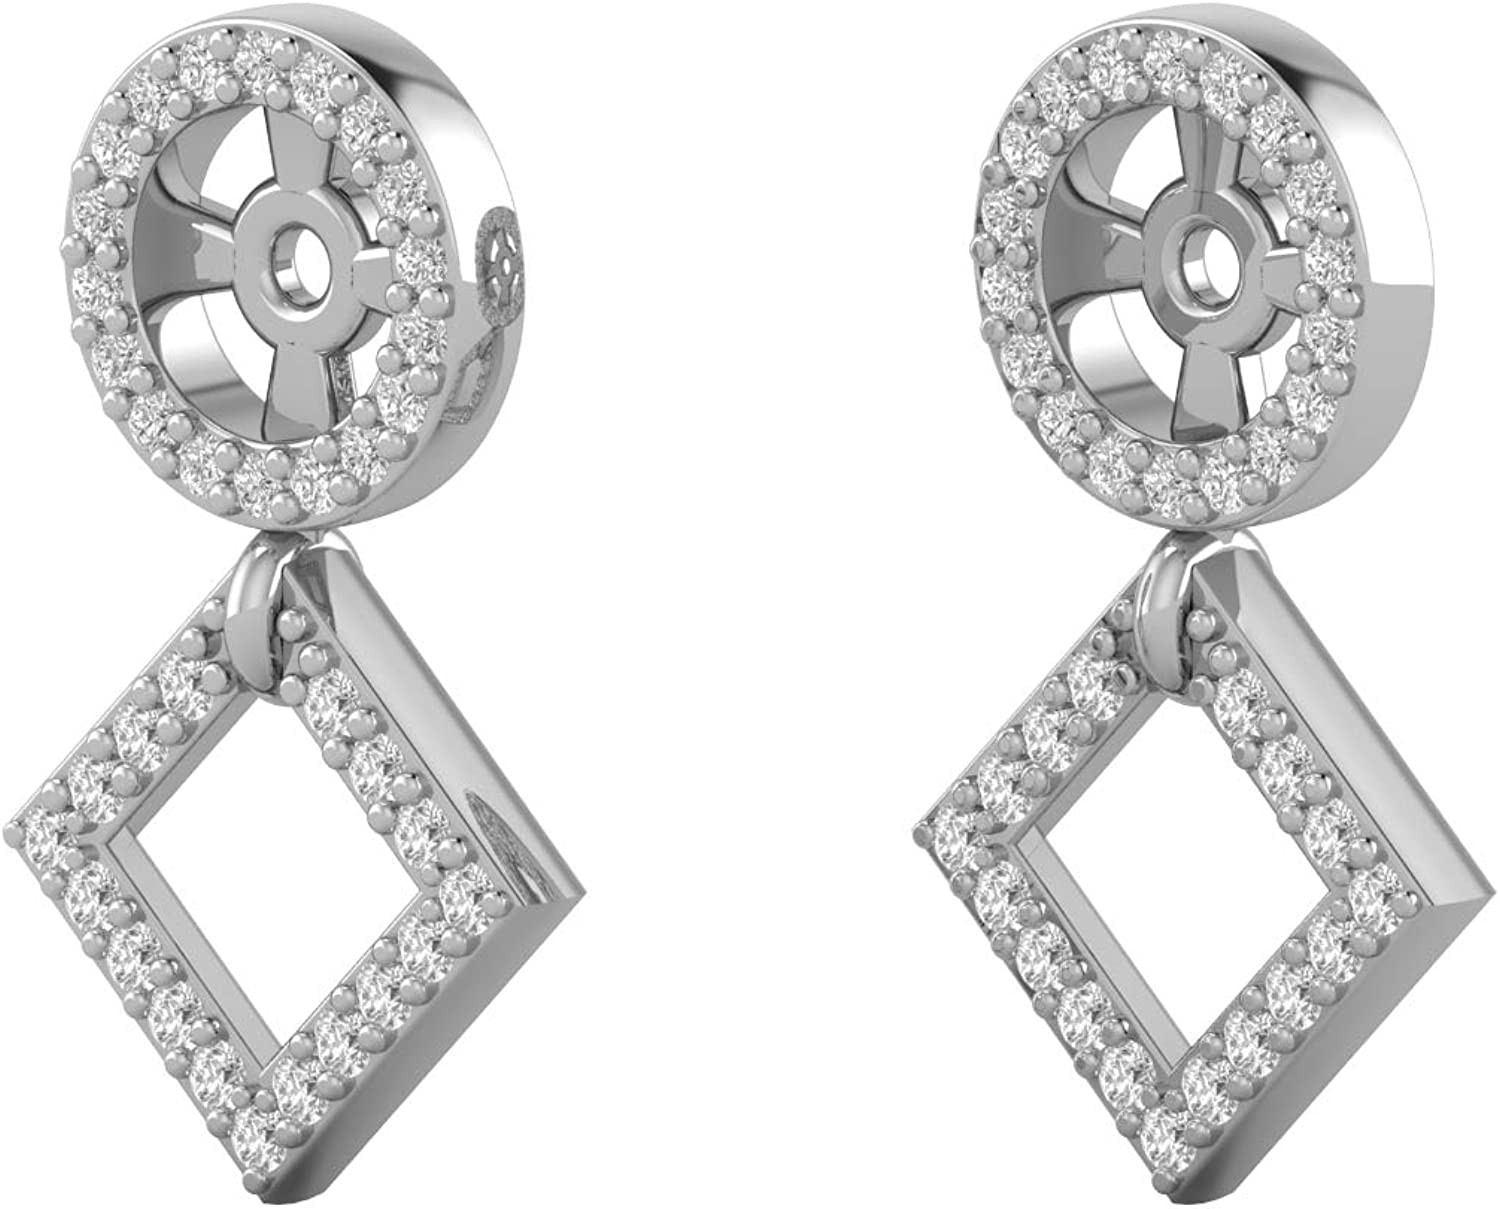 14K White Gold 1/4 Carat (H-I Color, SI2-I1 Clarity) Natural Diamond Removable Stud Earrings Enhancing Jackets with Kite Shaped Accented Dangle for Women (fits 4.5-5.5mm)